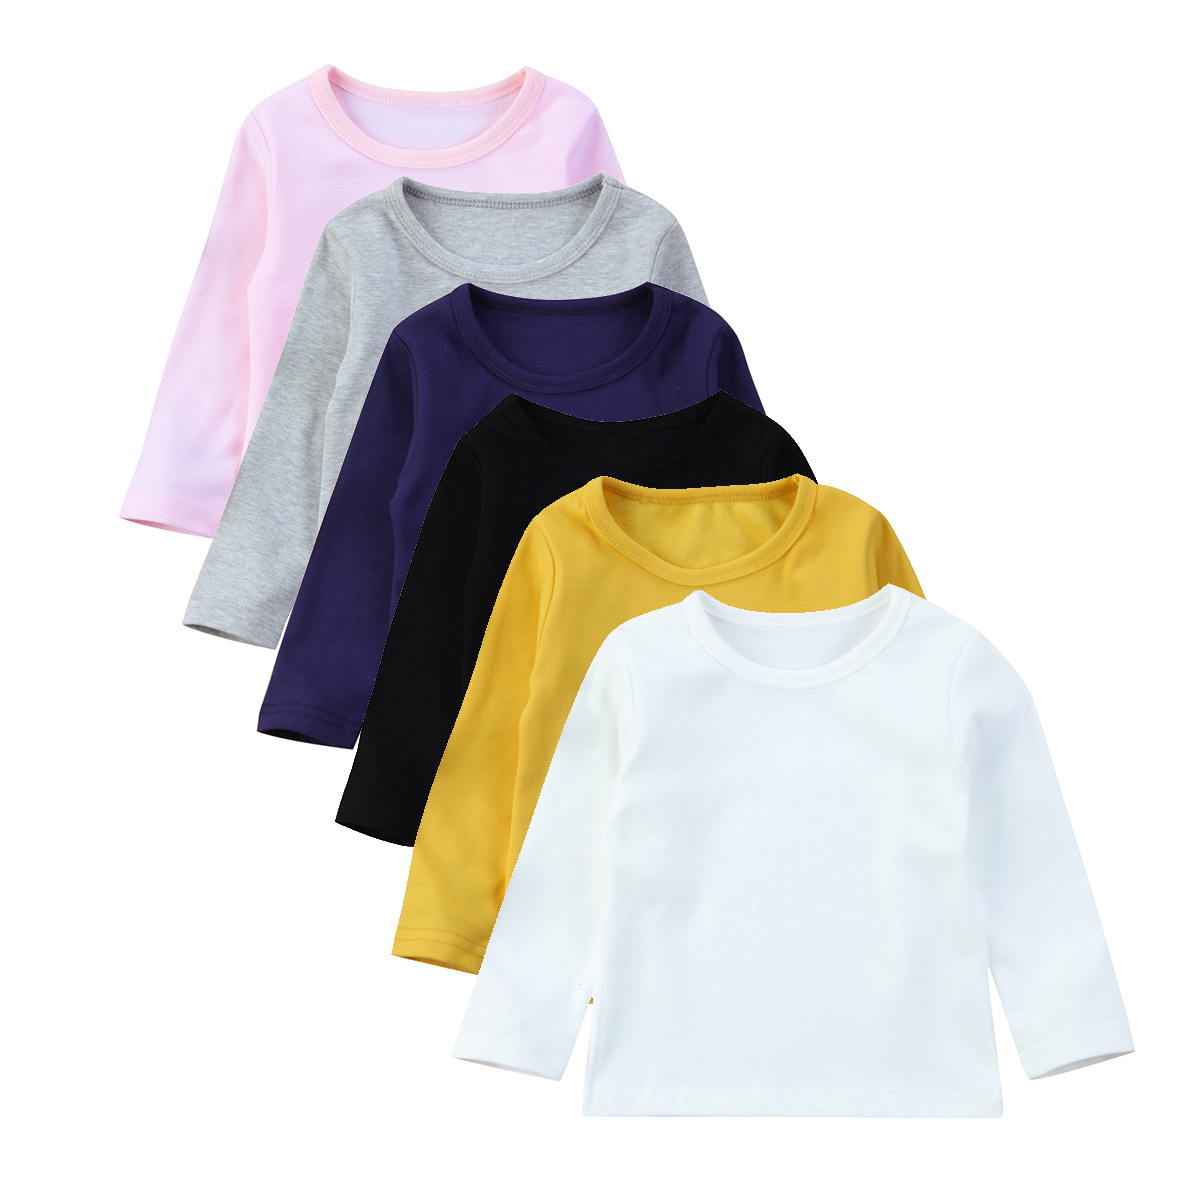 Toddler Kids Baby Girl Cotton Candy Color Long Sleeve T shirt Tops  Tee Shirt Clothes